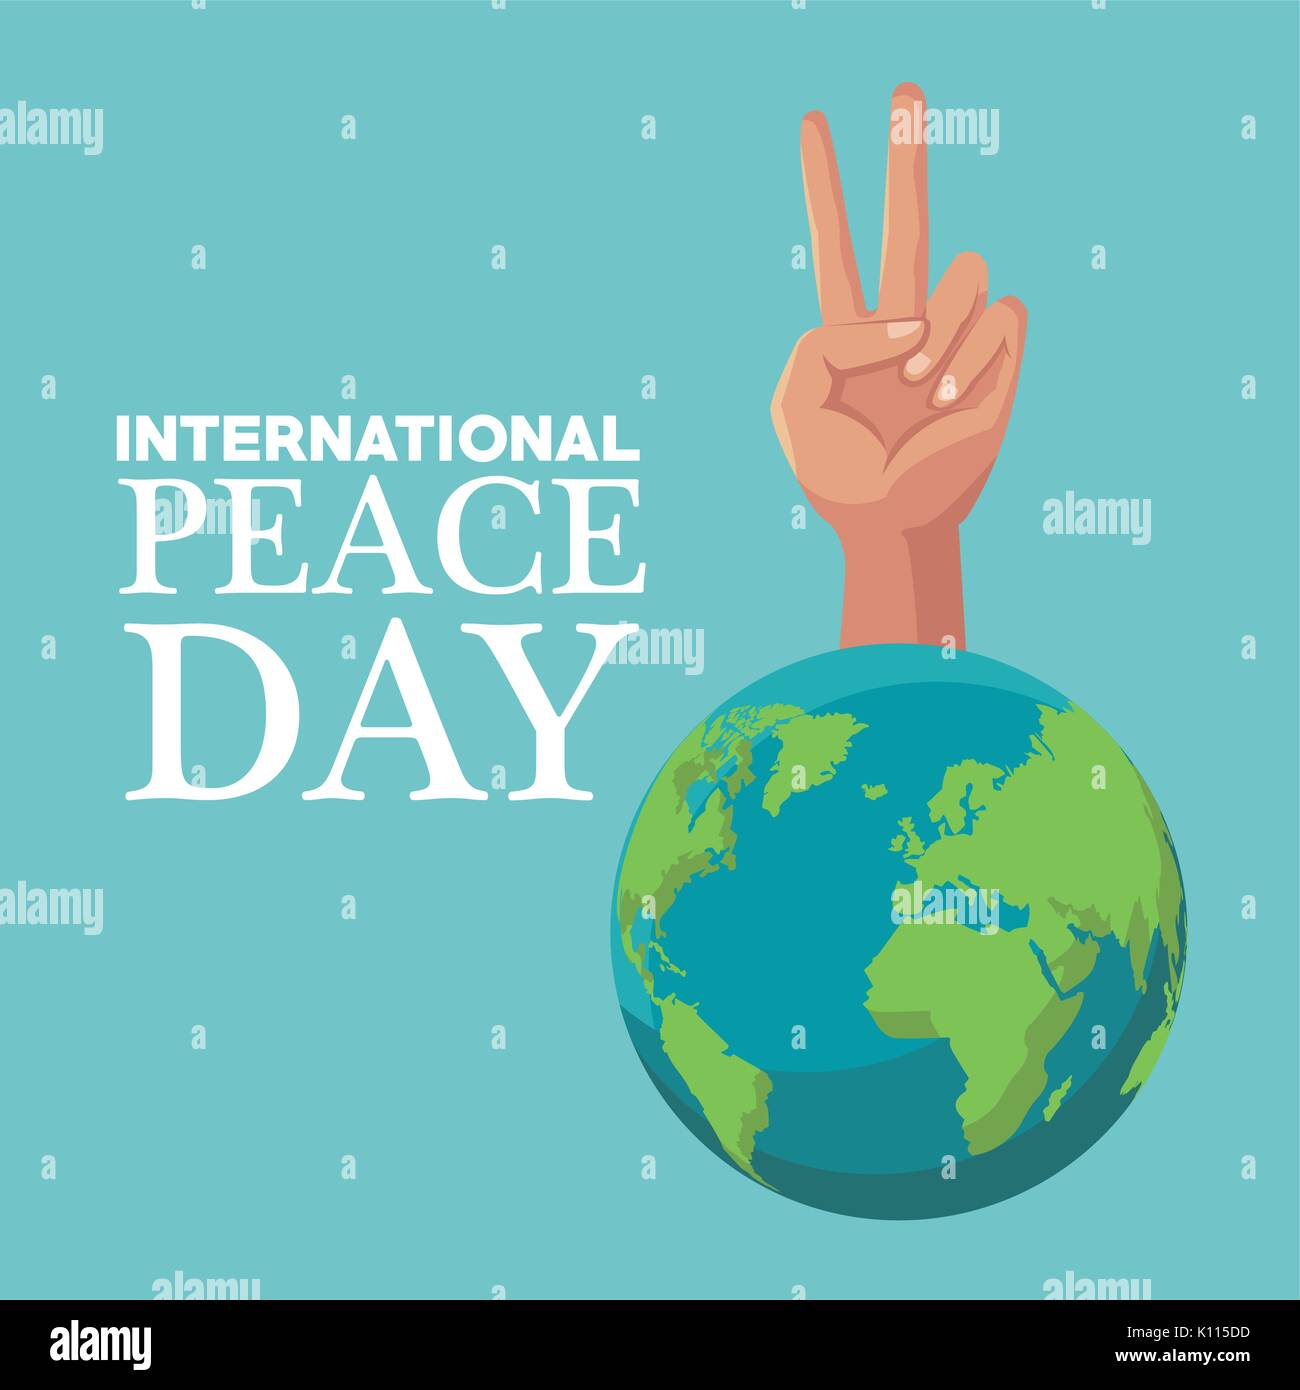 Earth day poster stock photos earth day poster stock images color poster earth world with hand victory symbol international peace day text vector illustration stock buycottarizona